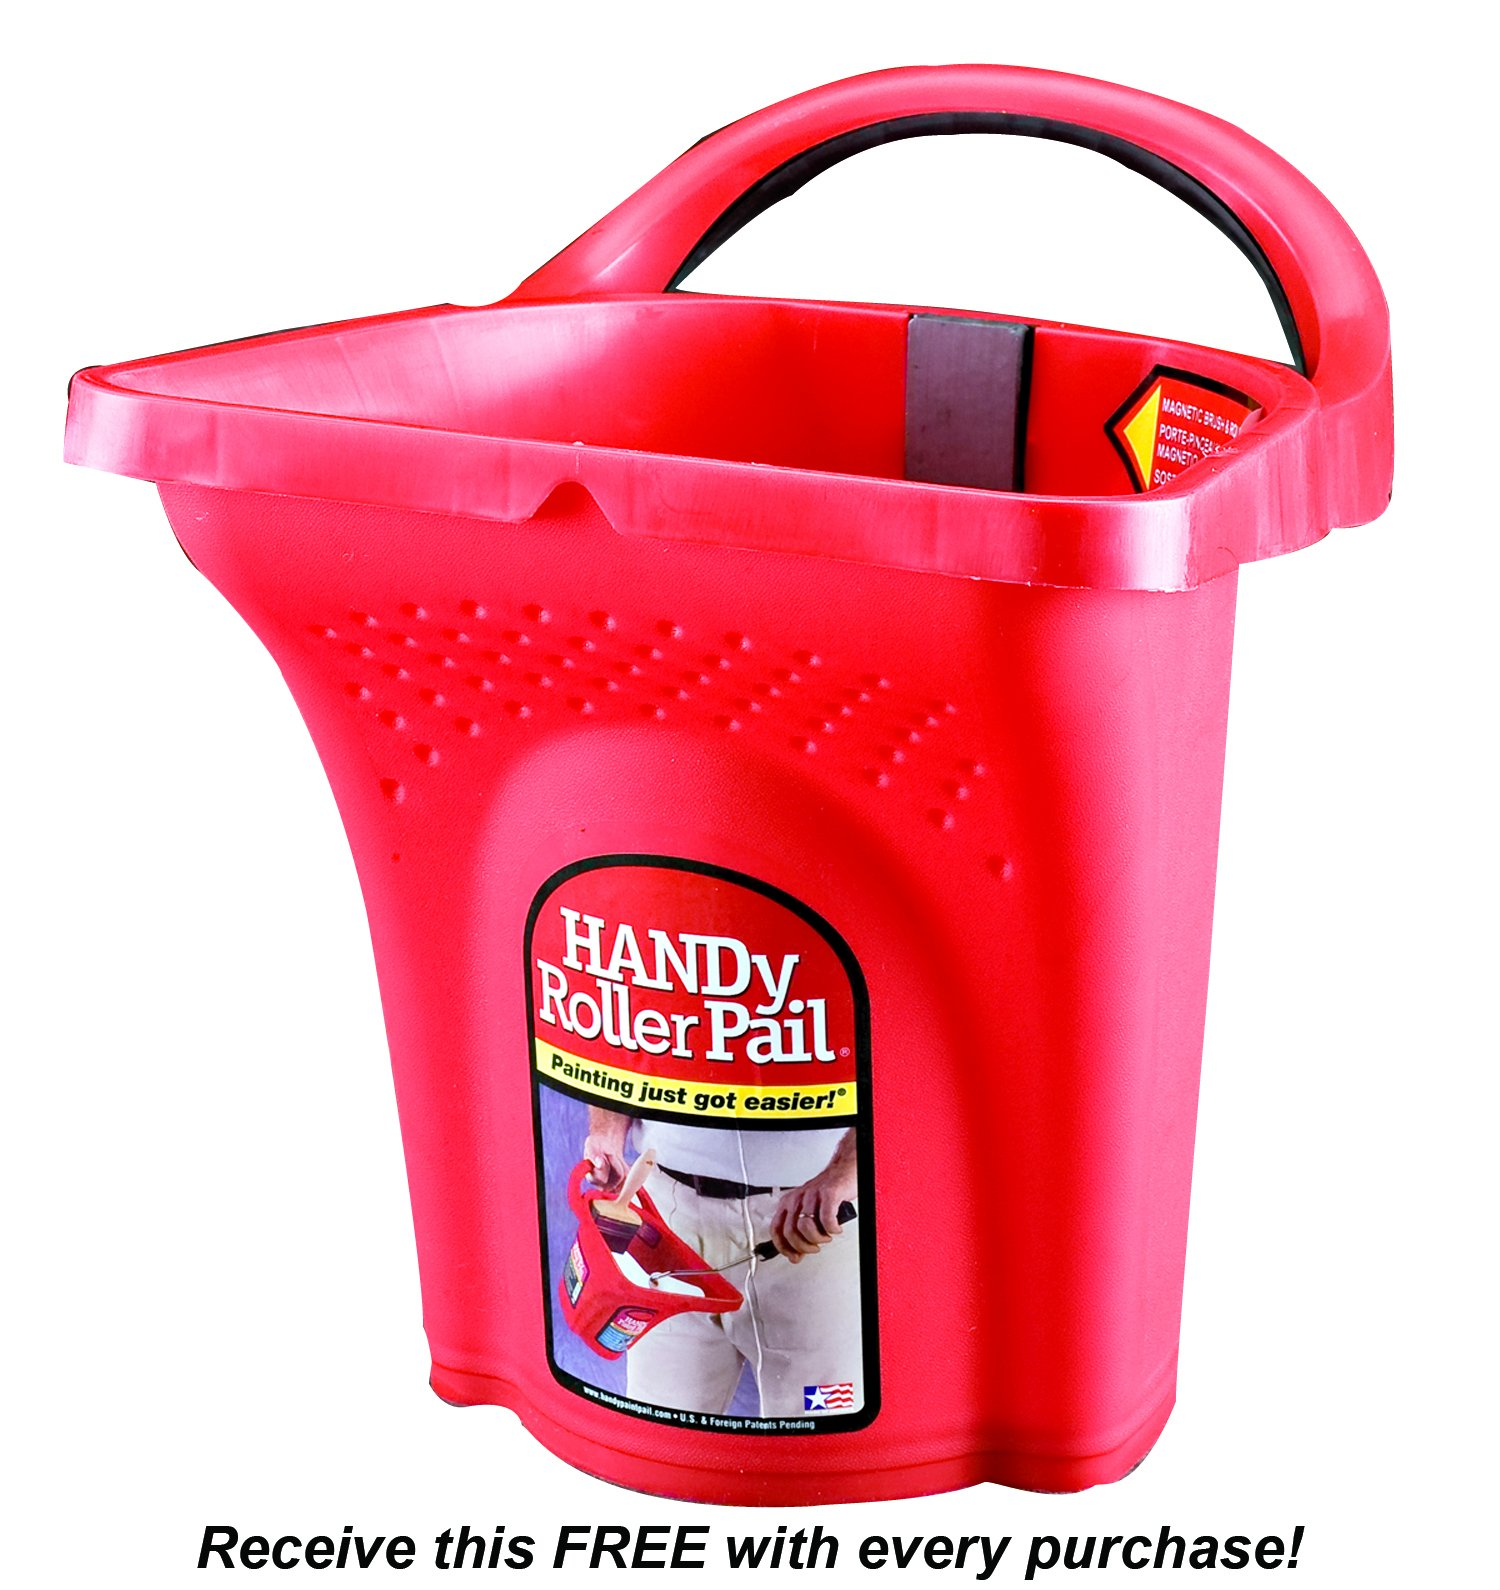 Handy Roller Pail Liners - Bulk 100 Pack + Free Handy Roller Pail by Handy Paint Pail